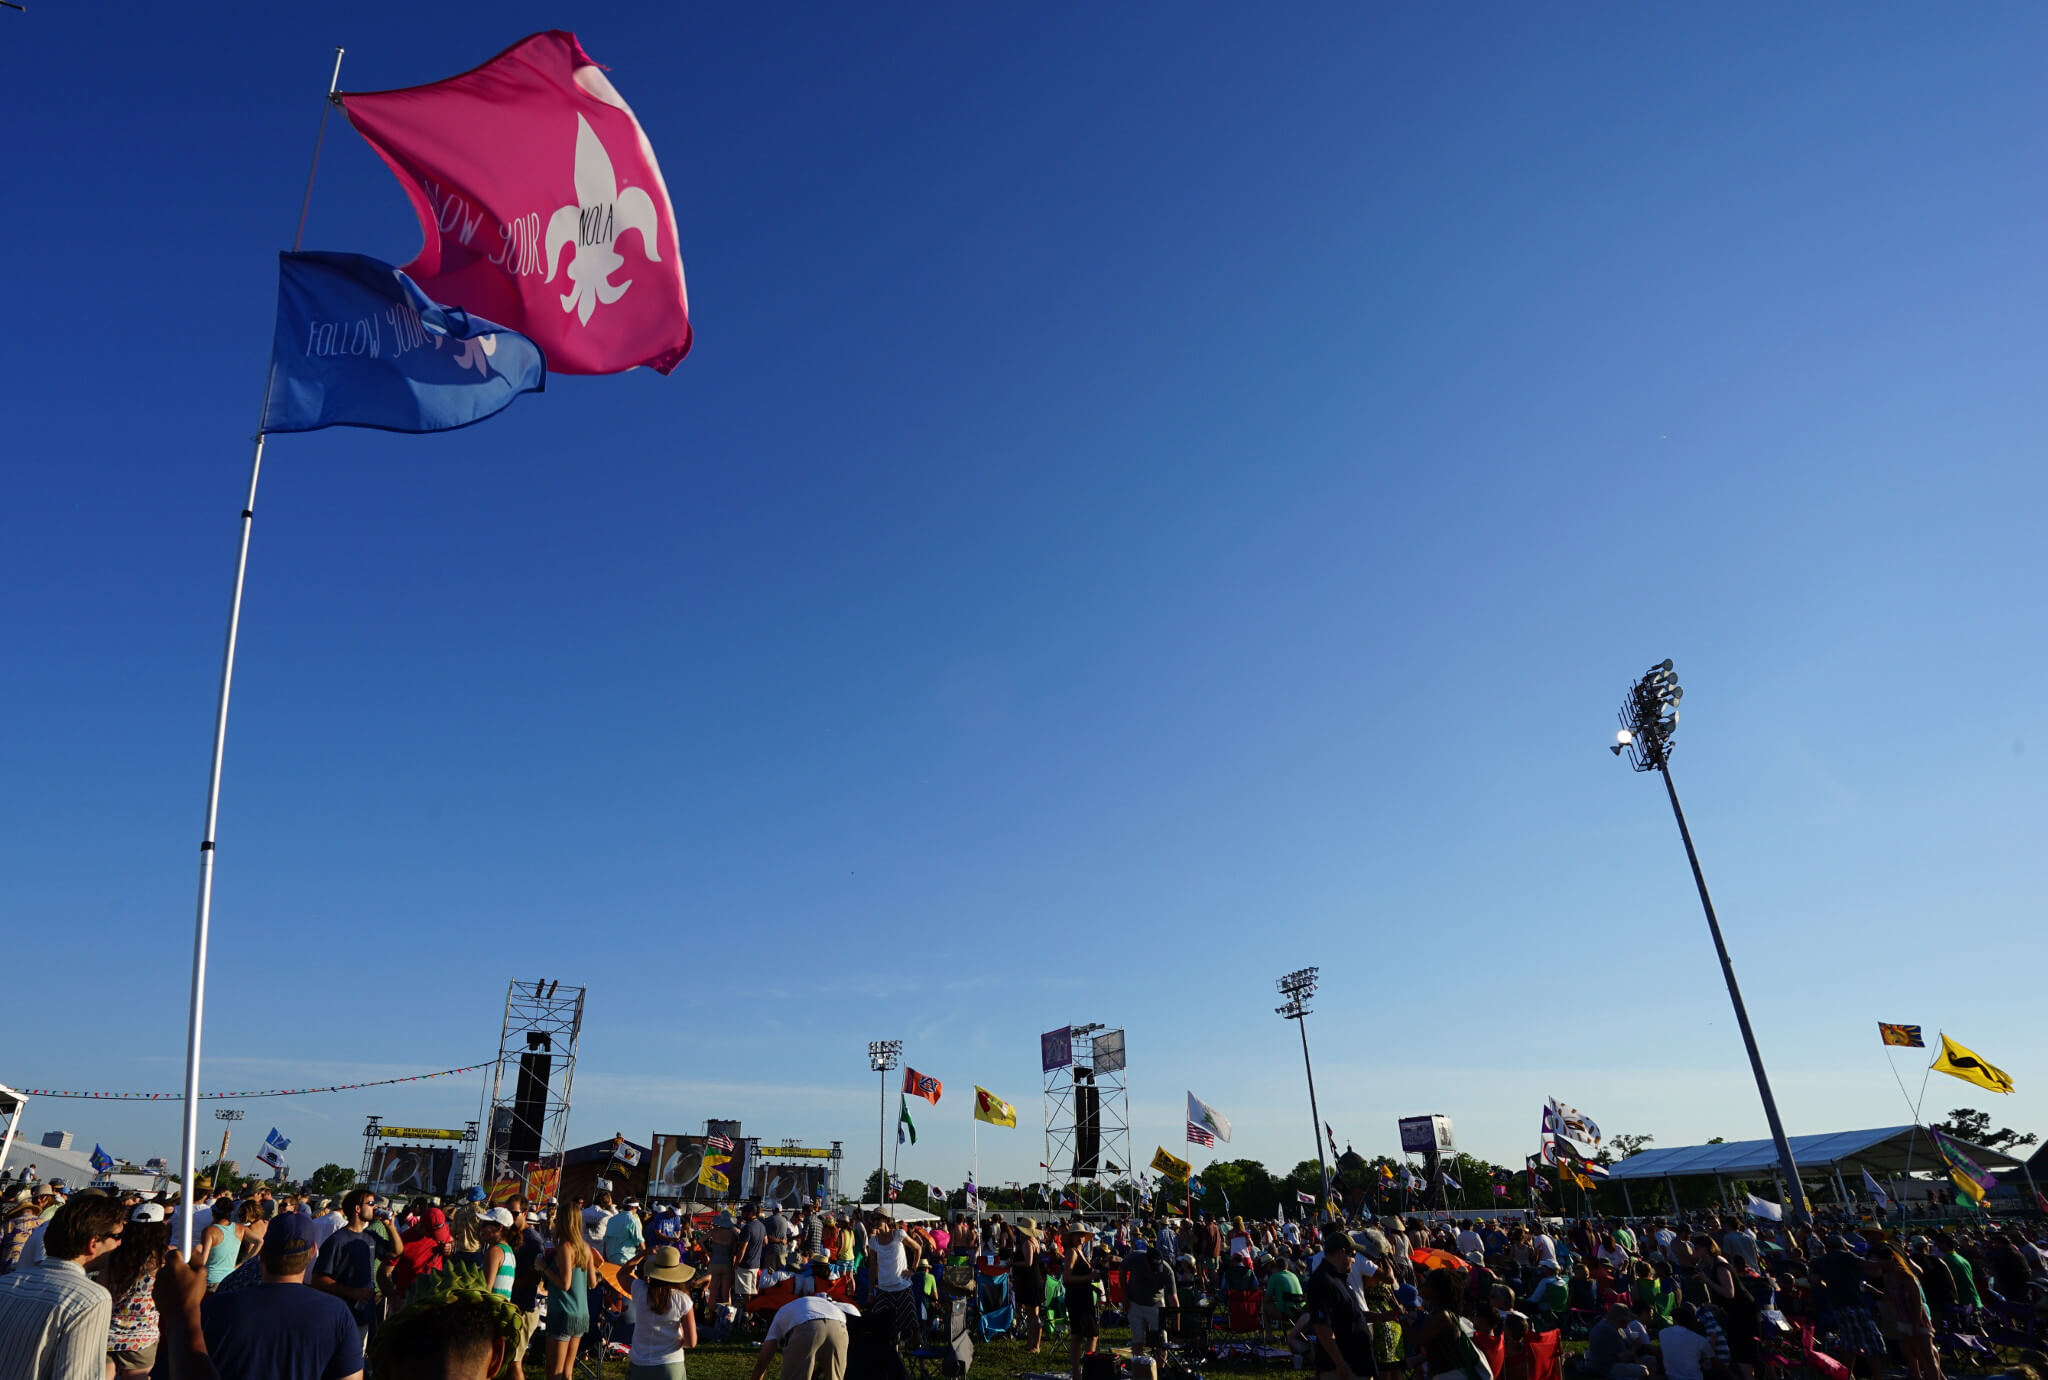 Jazz Fest is one of many festivals that impacts our economy. (Photo: Paul Broussard)